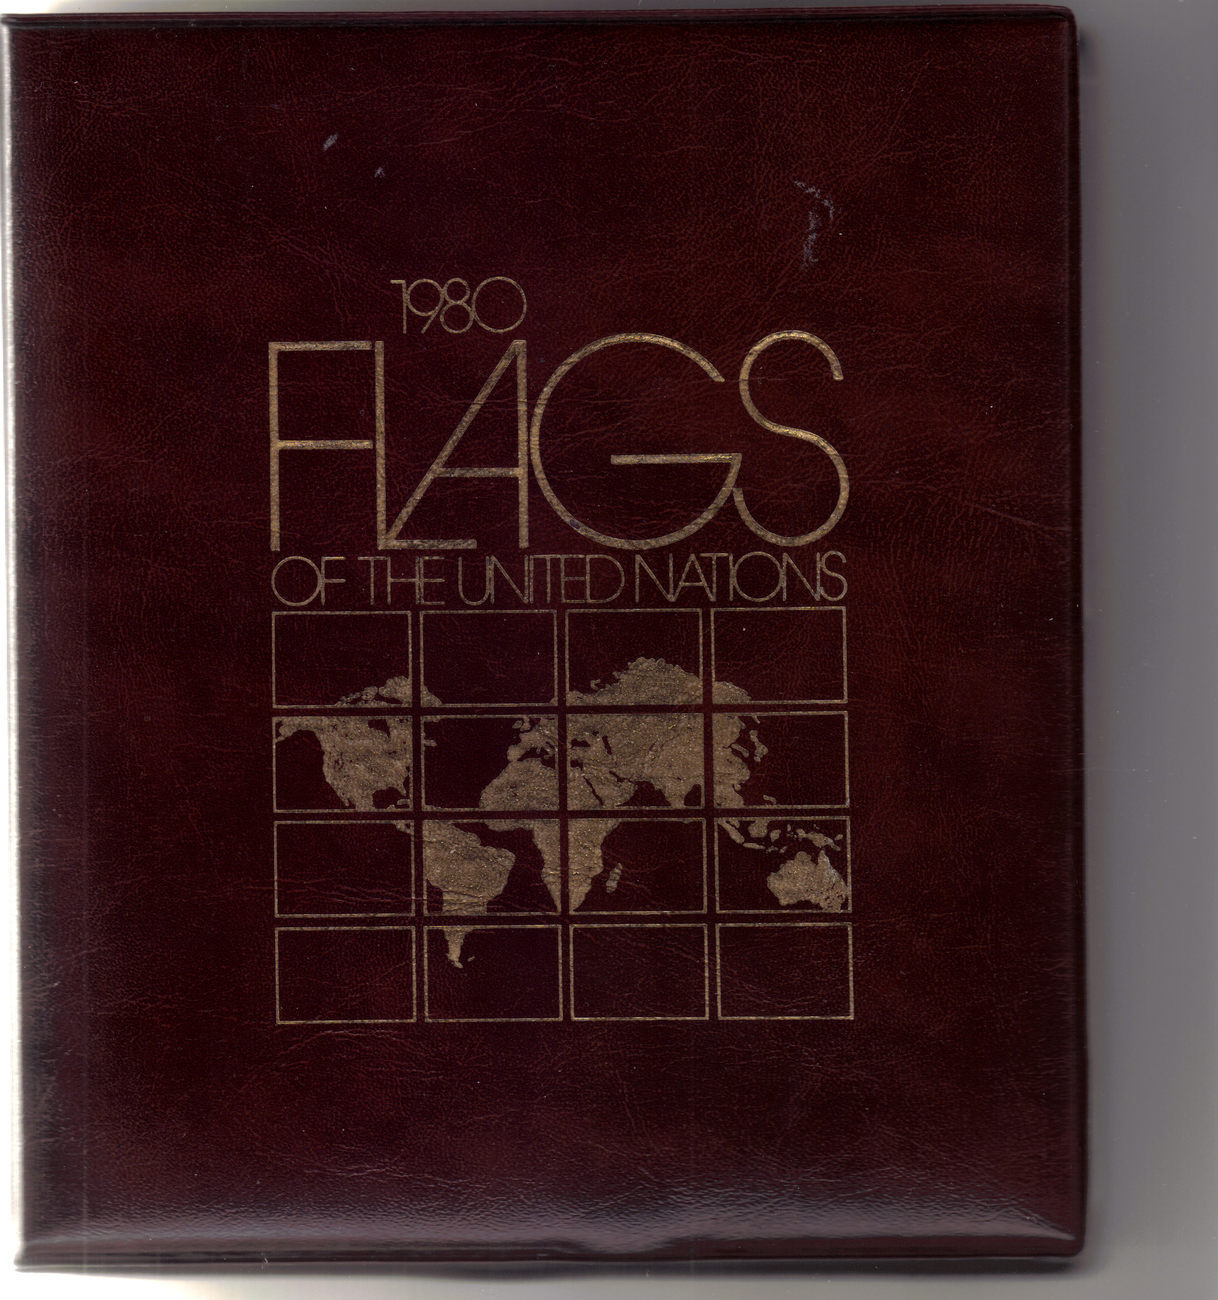 1980 flags fdc